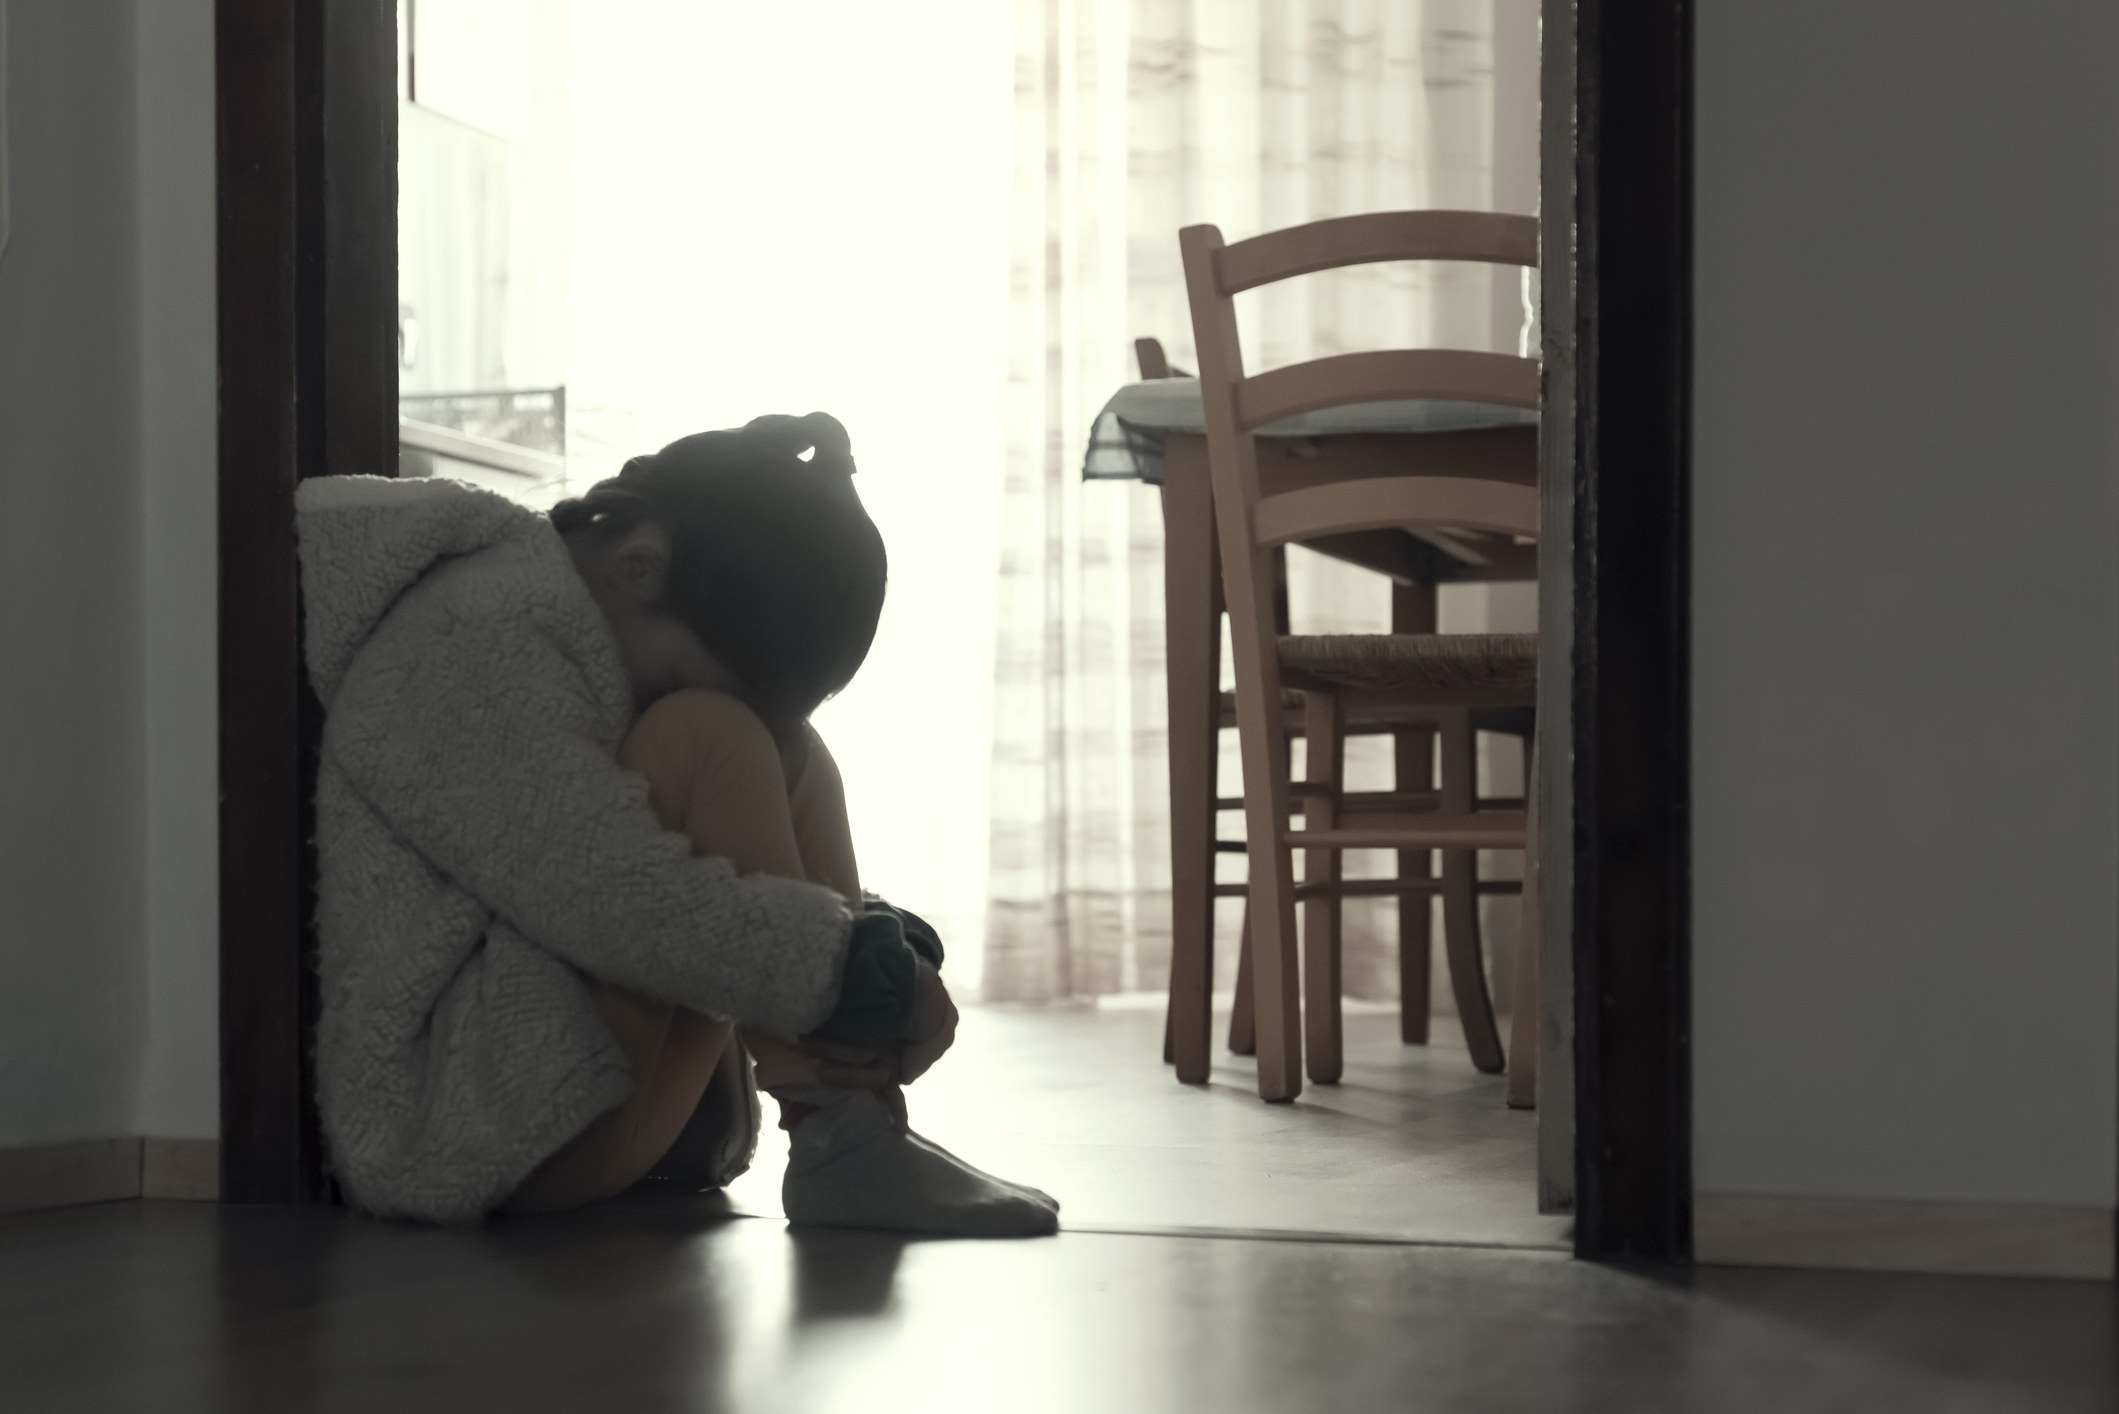 A child crouched in the doorway looking upset